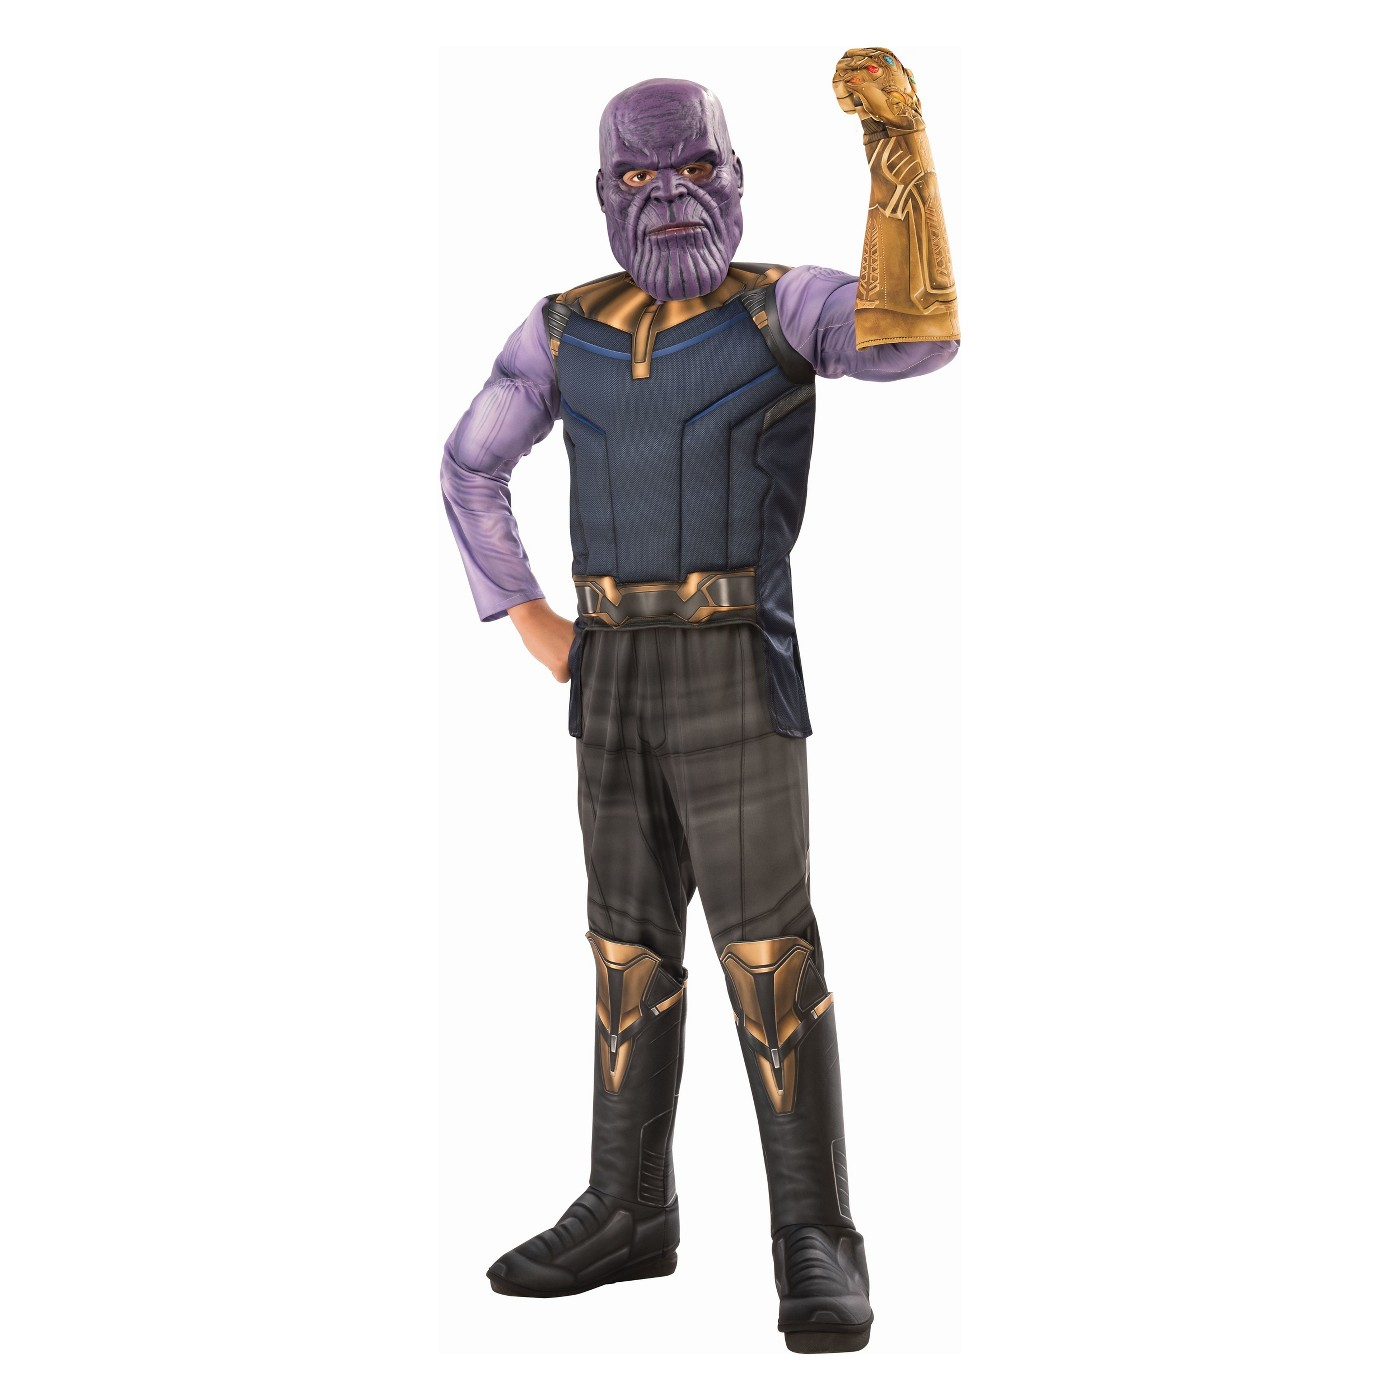 Boys' Marvel Thanos Avengers Deluxe Muscle Halloween Costume - image 1 of 1